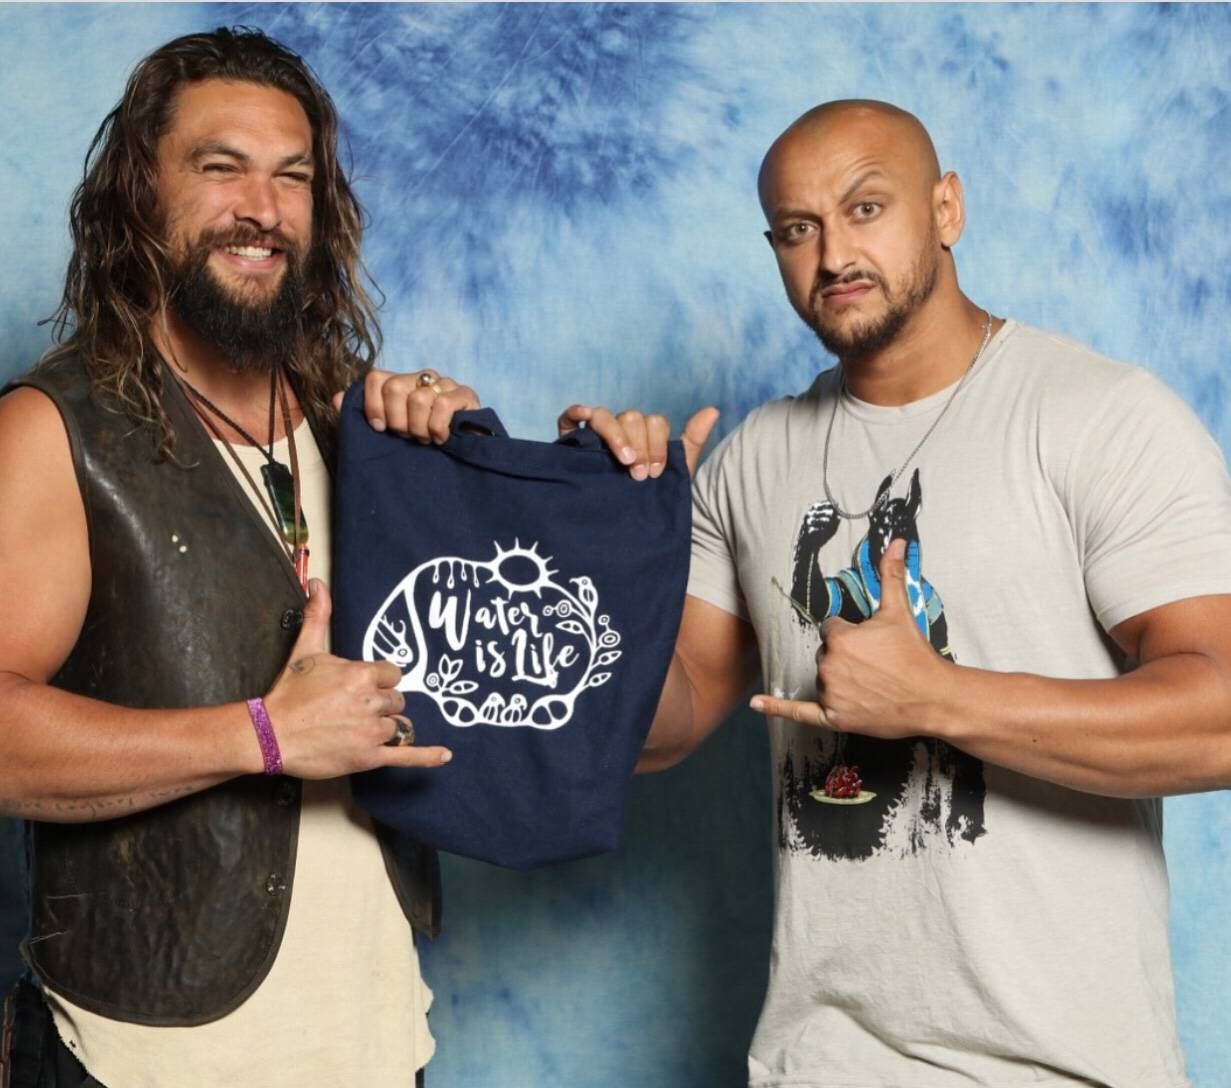 Jason Momoa & Mada Abdelhamid Join Forces With Water Is Life